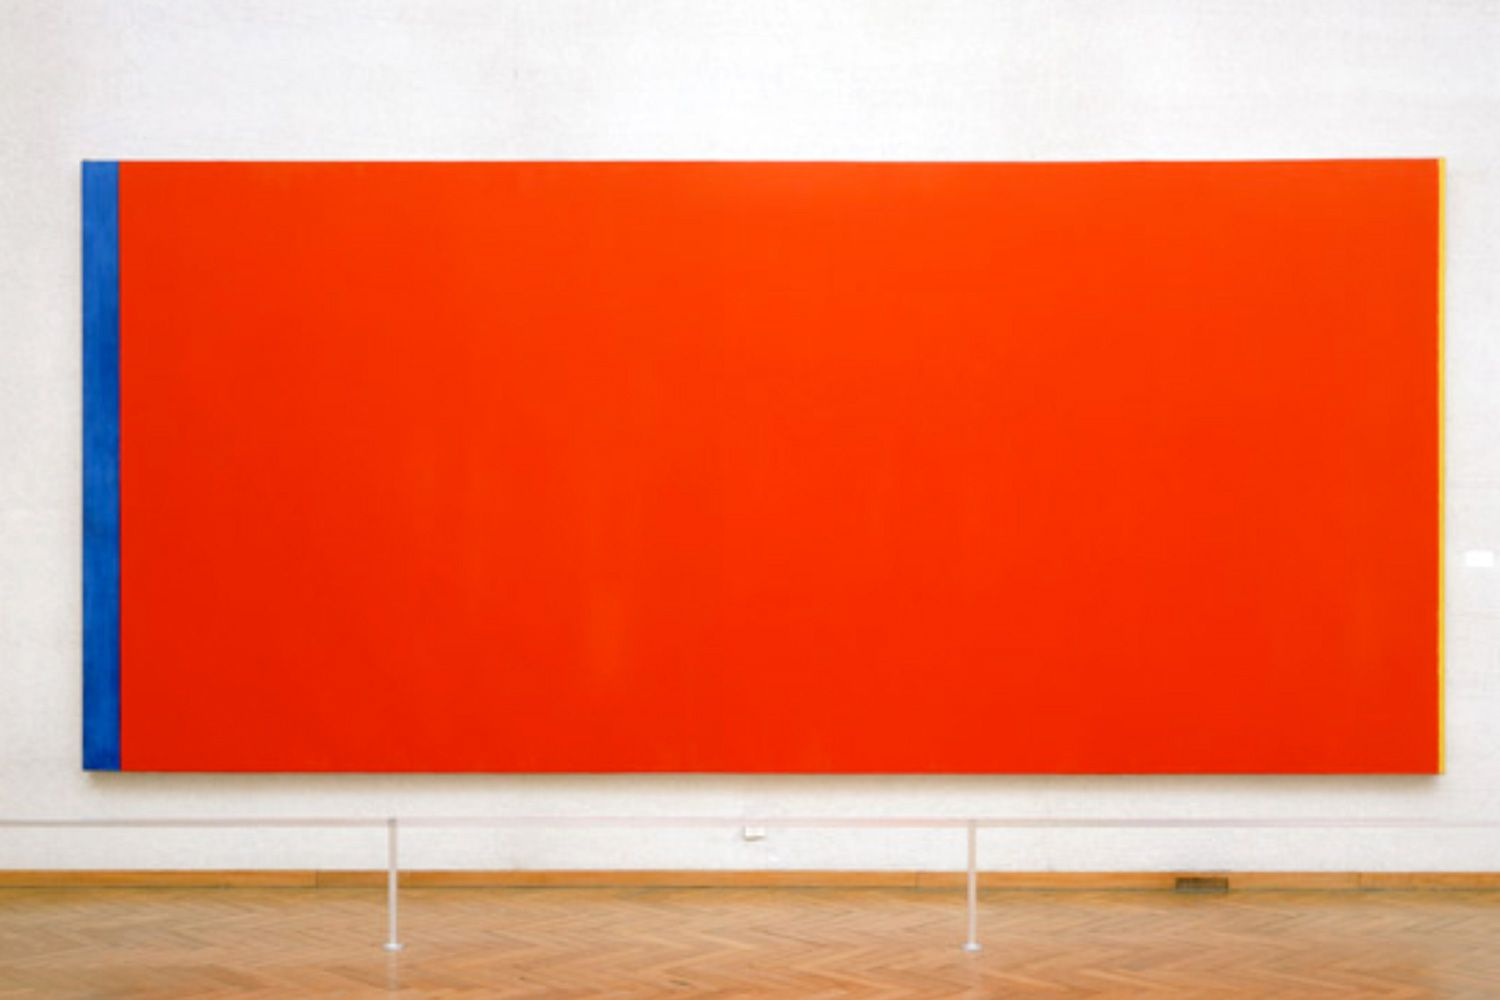 Barnett Newman: Who is Afraid of Red, Yellow and Blue